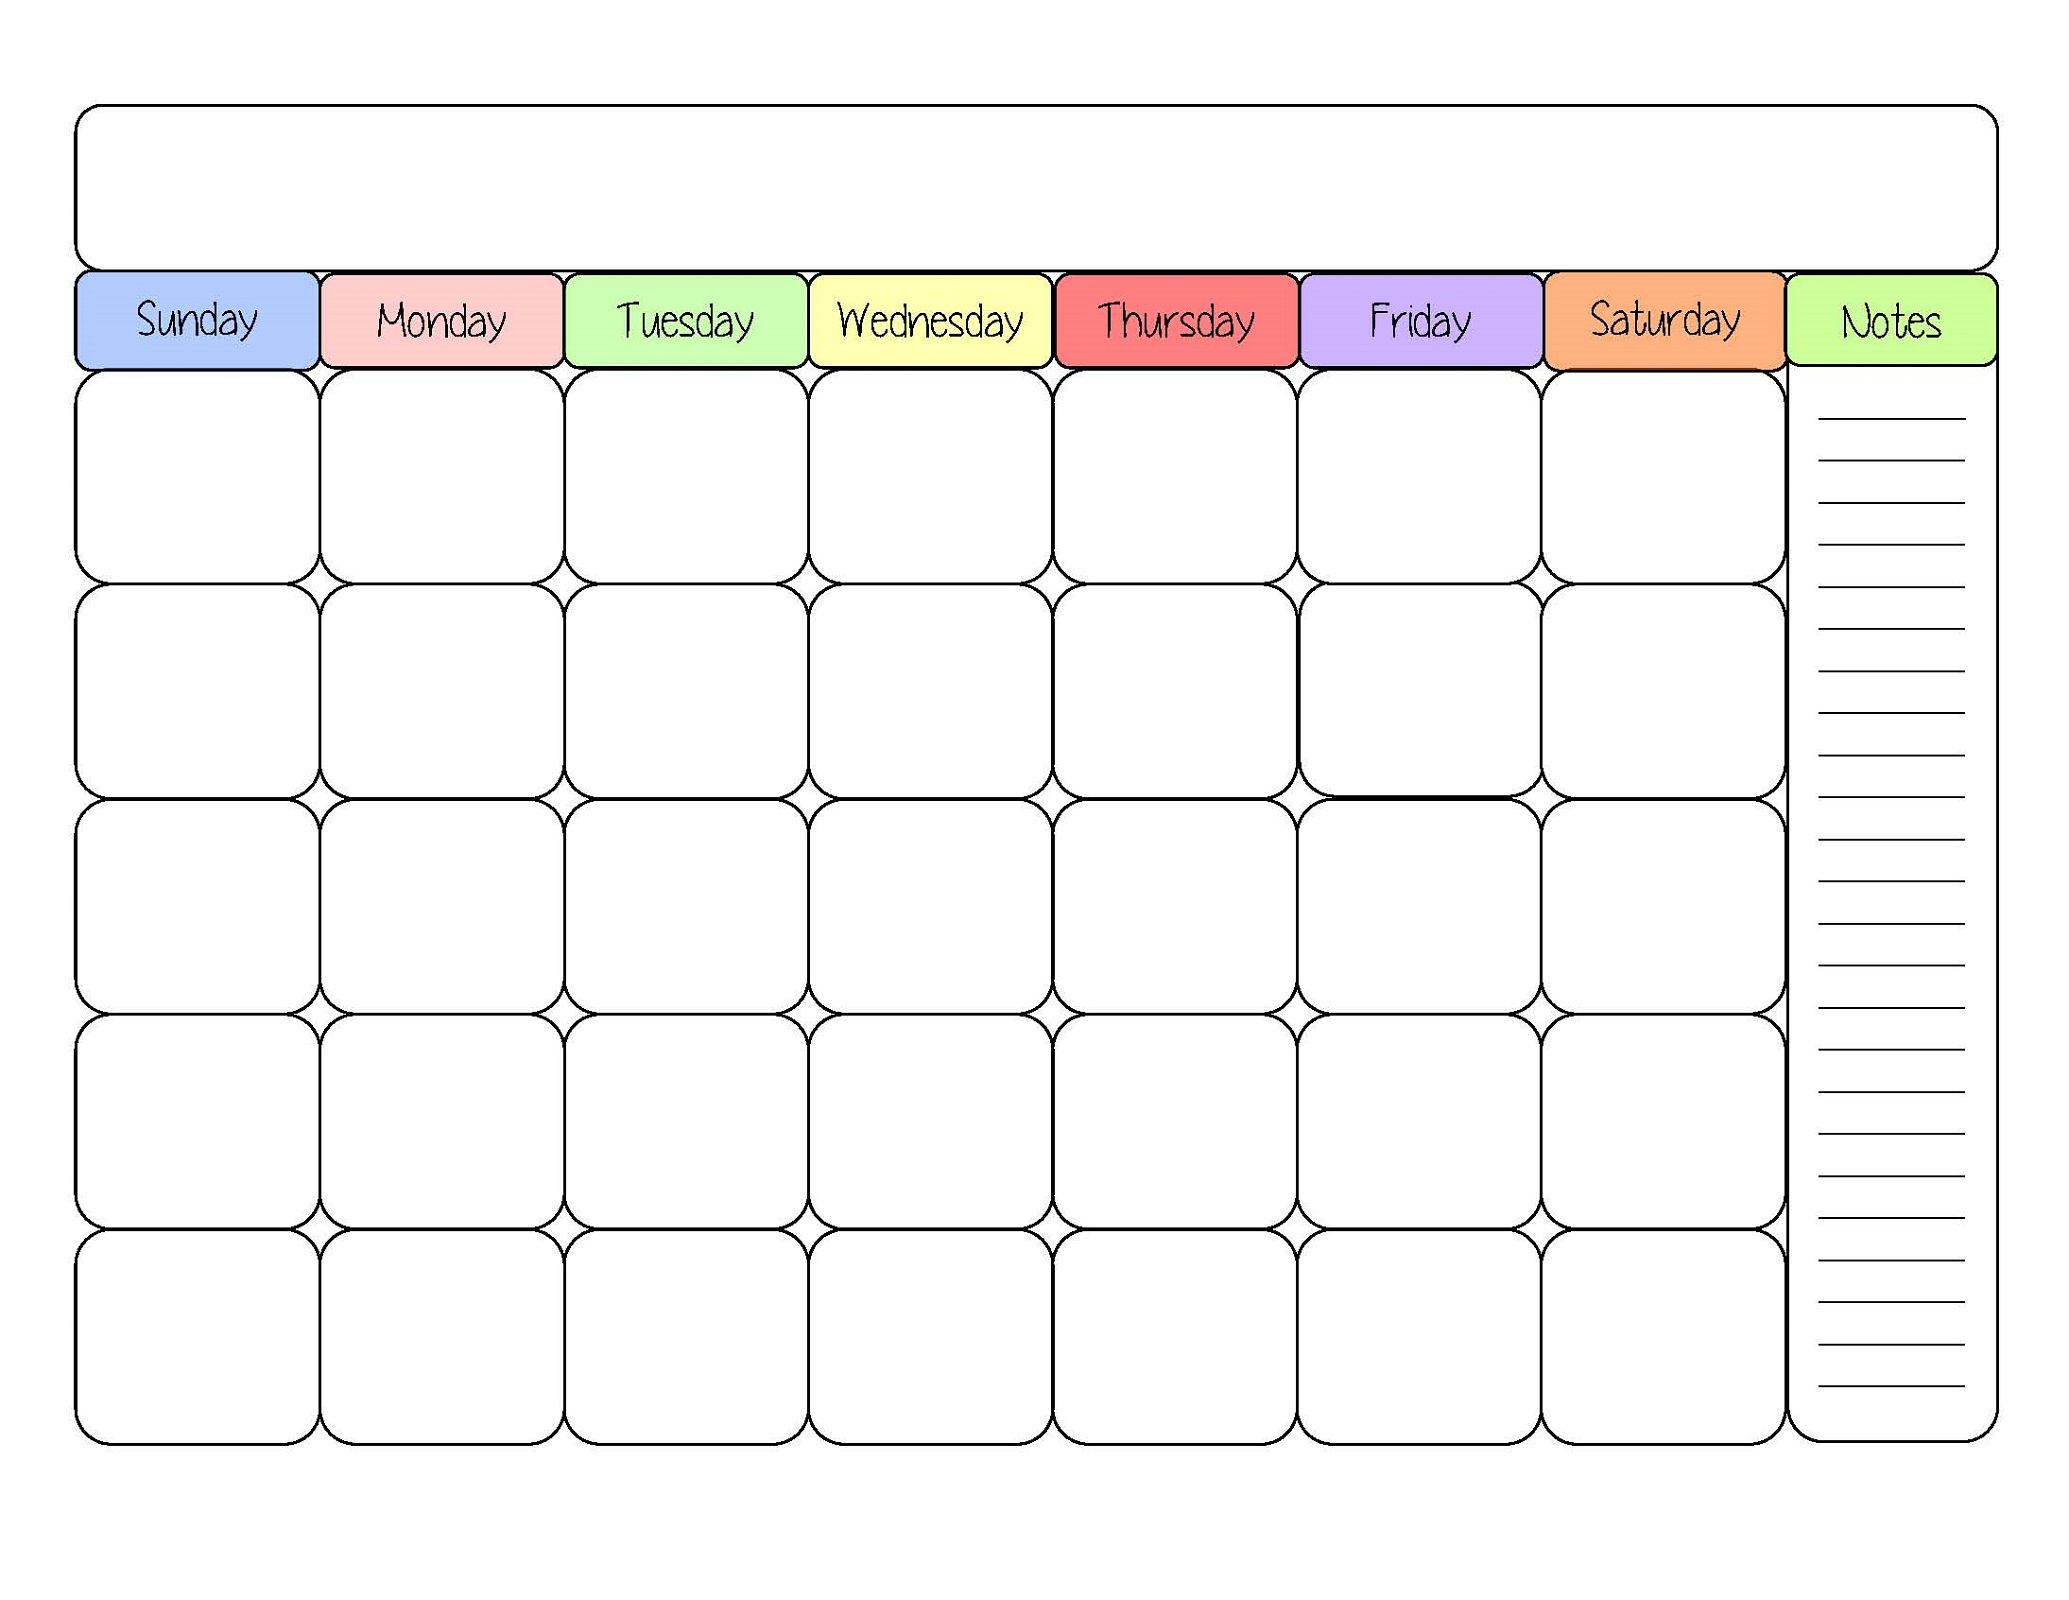 Free Printable Calendar Templates | Activity Shelter pertaining to Free Calendar Templates Printable